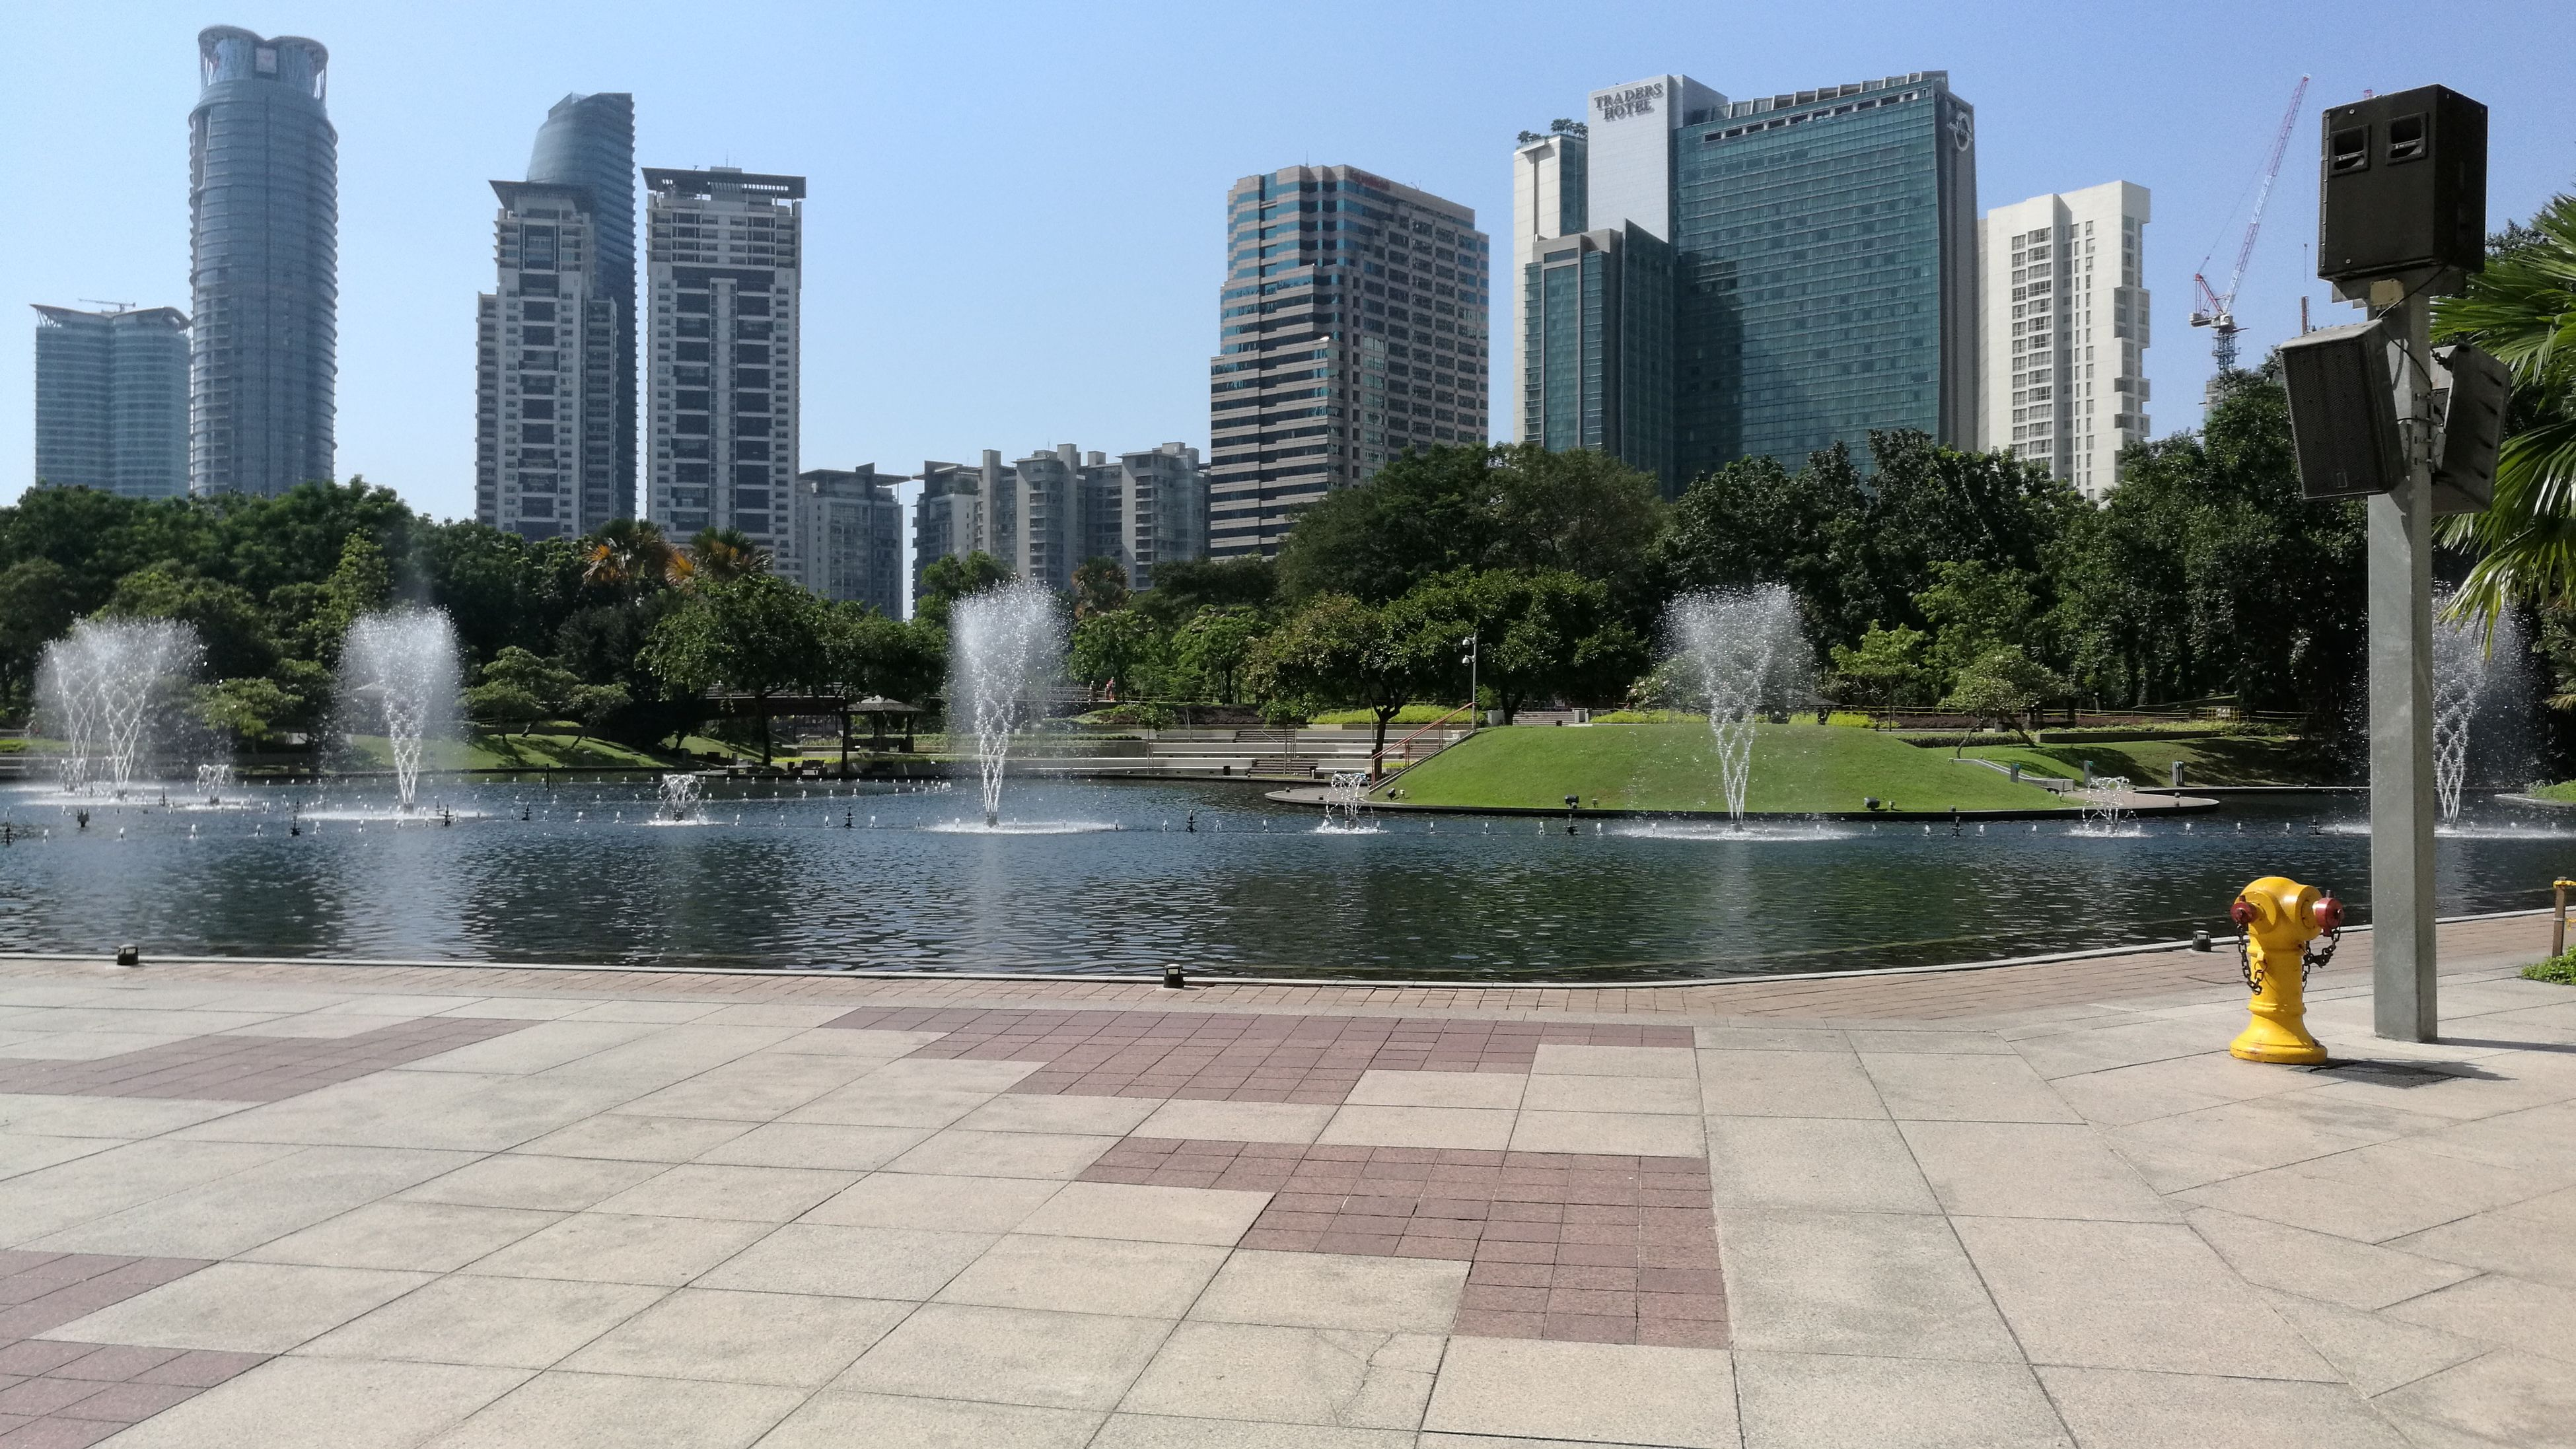 water, fountain, architecture, built structure, city, motion, tree, splashing, skyscraper, spraying, modern, outdoors, cityscape, day, office building, travel destinations, growth, city life, tall - high, flowing water, no people, nature, sky